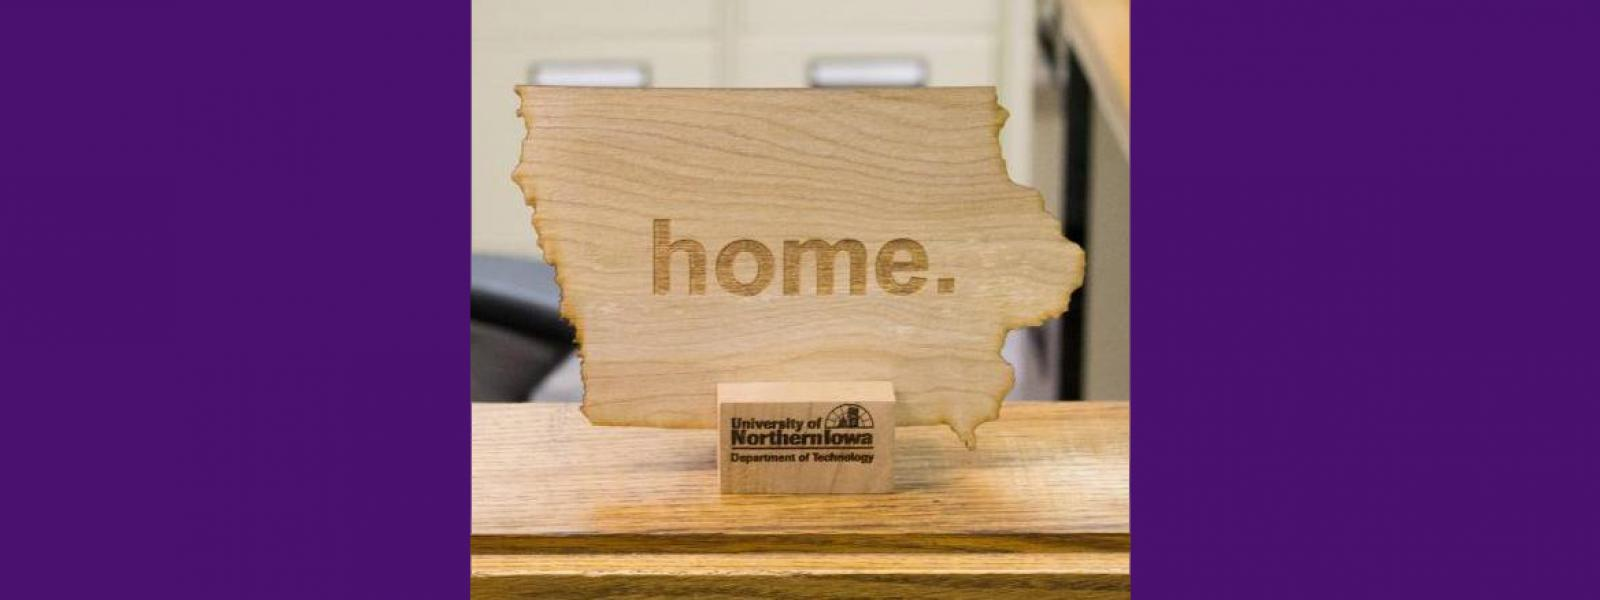 Iowa Home wooden sign